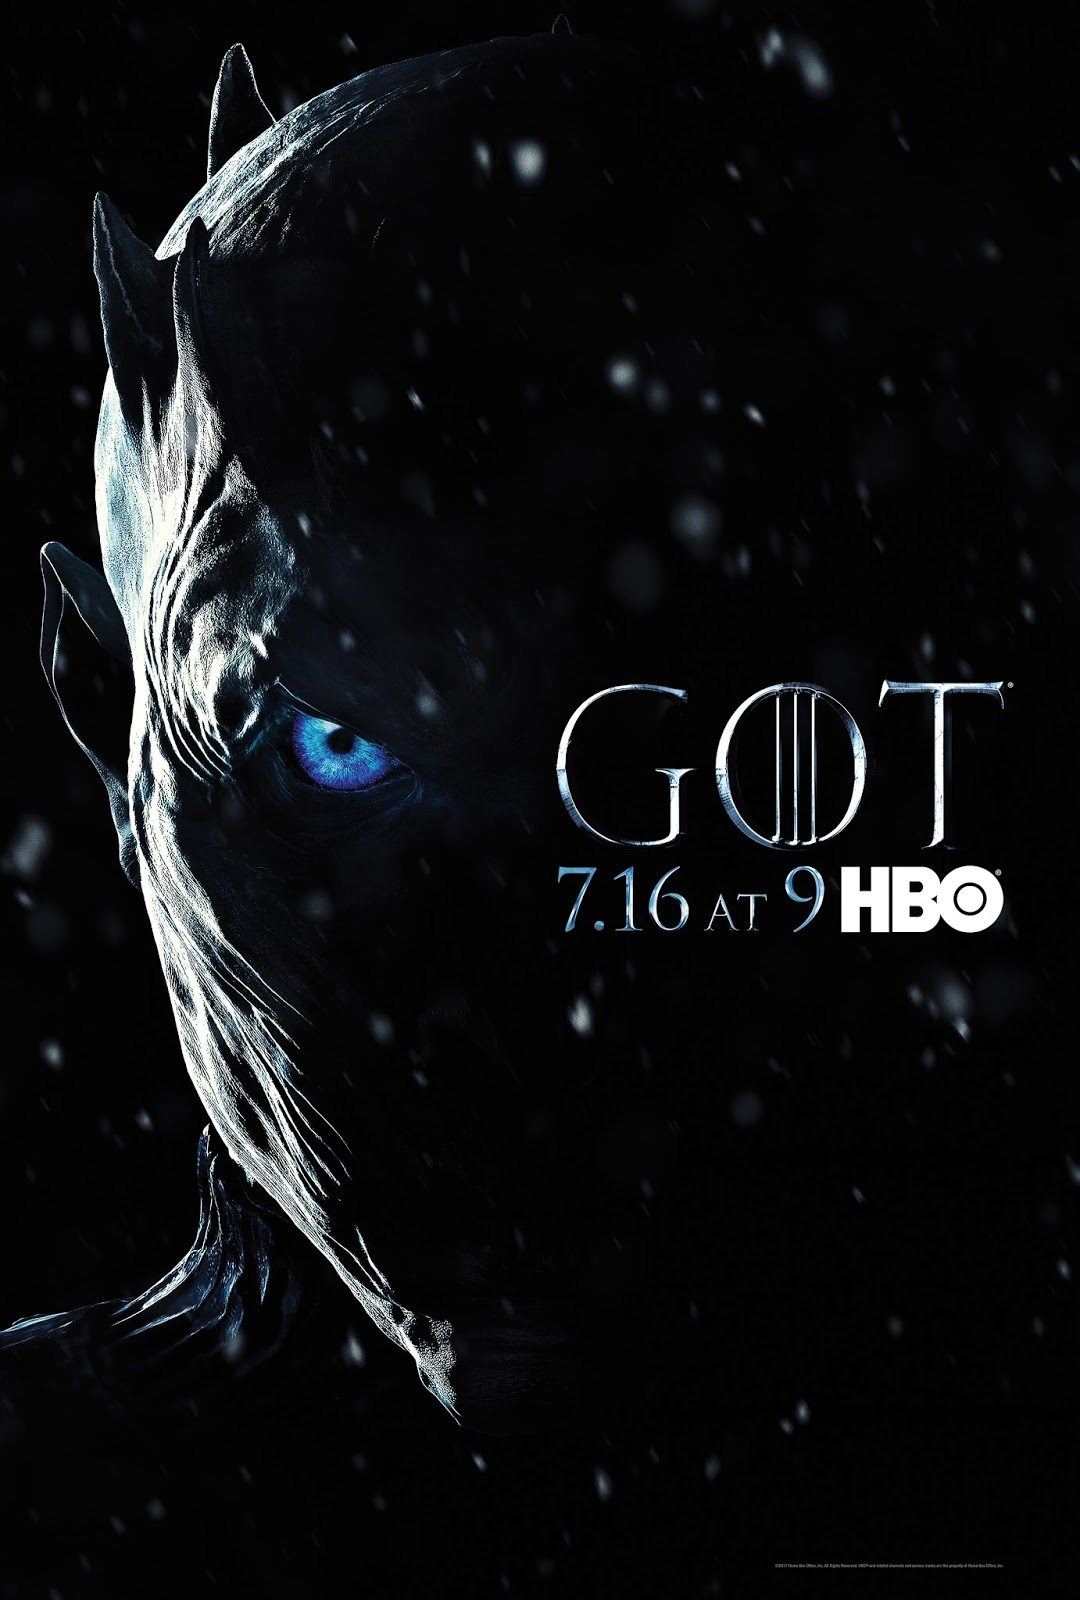 game of thrones s07e06 download 480p